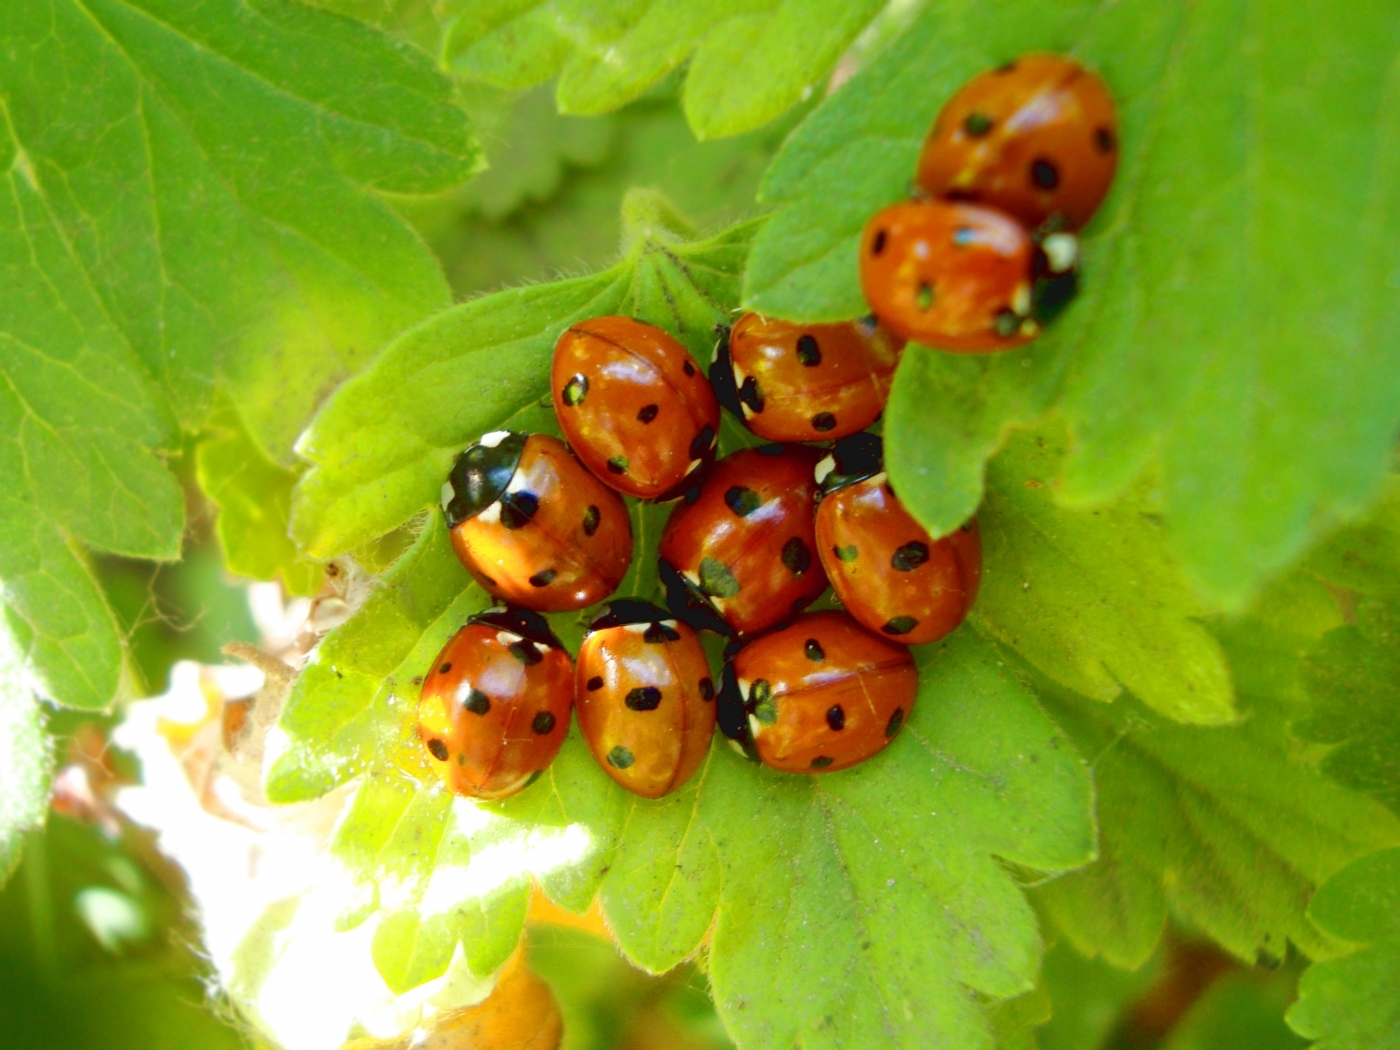 30690 download wallpaper Insects, Ladybugs screensavers and pictures for free